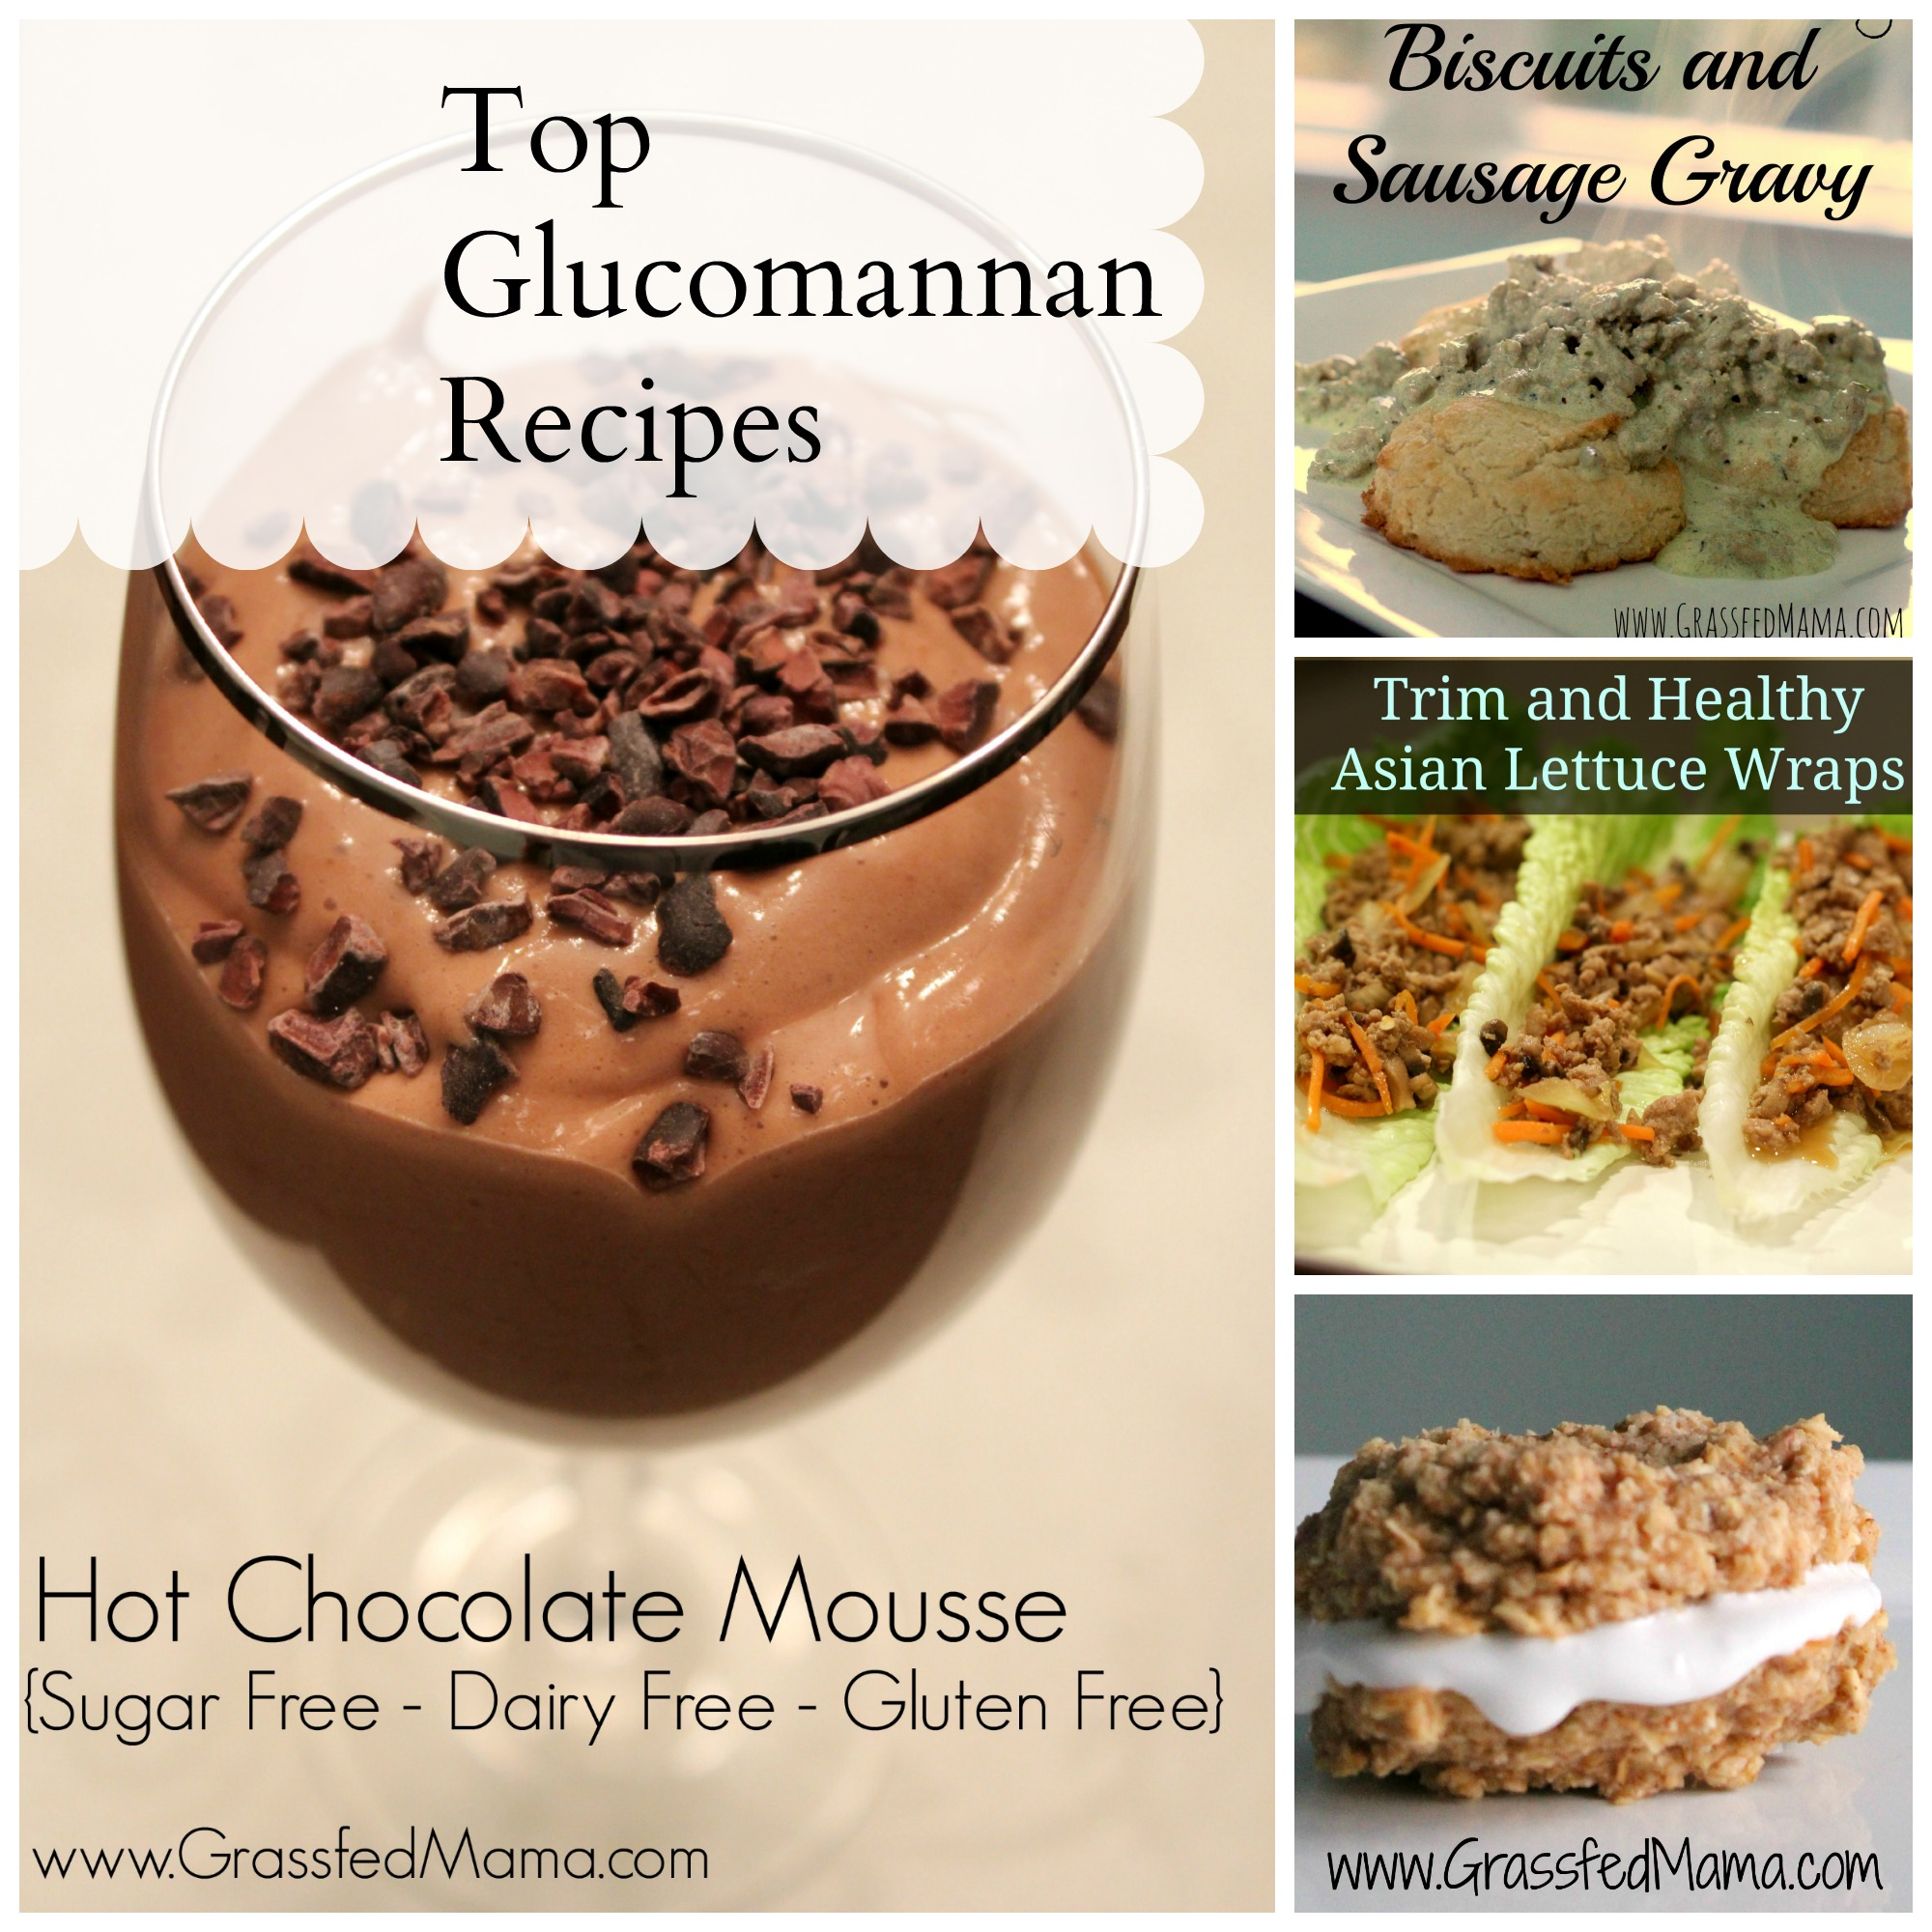 Top glucomannan recipes